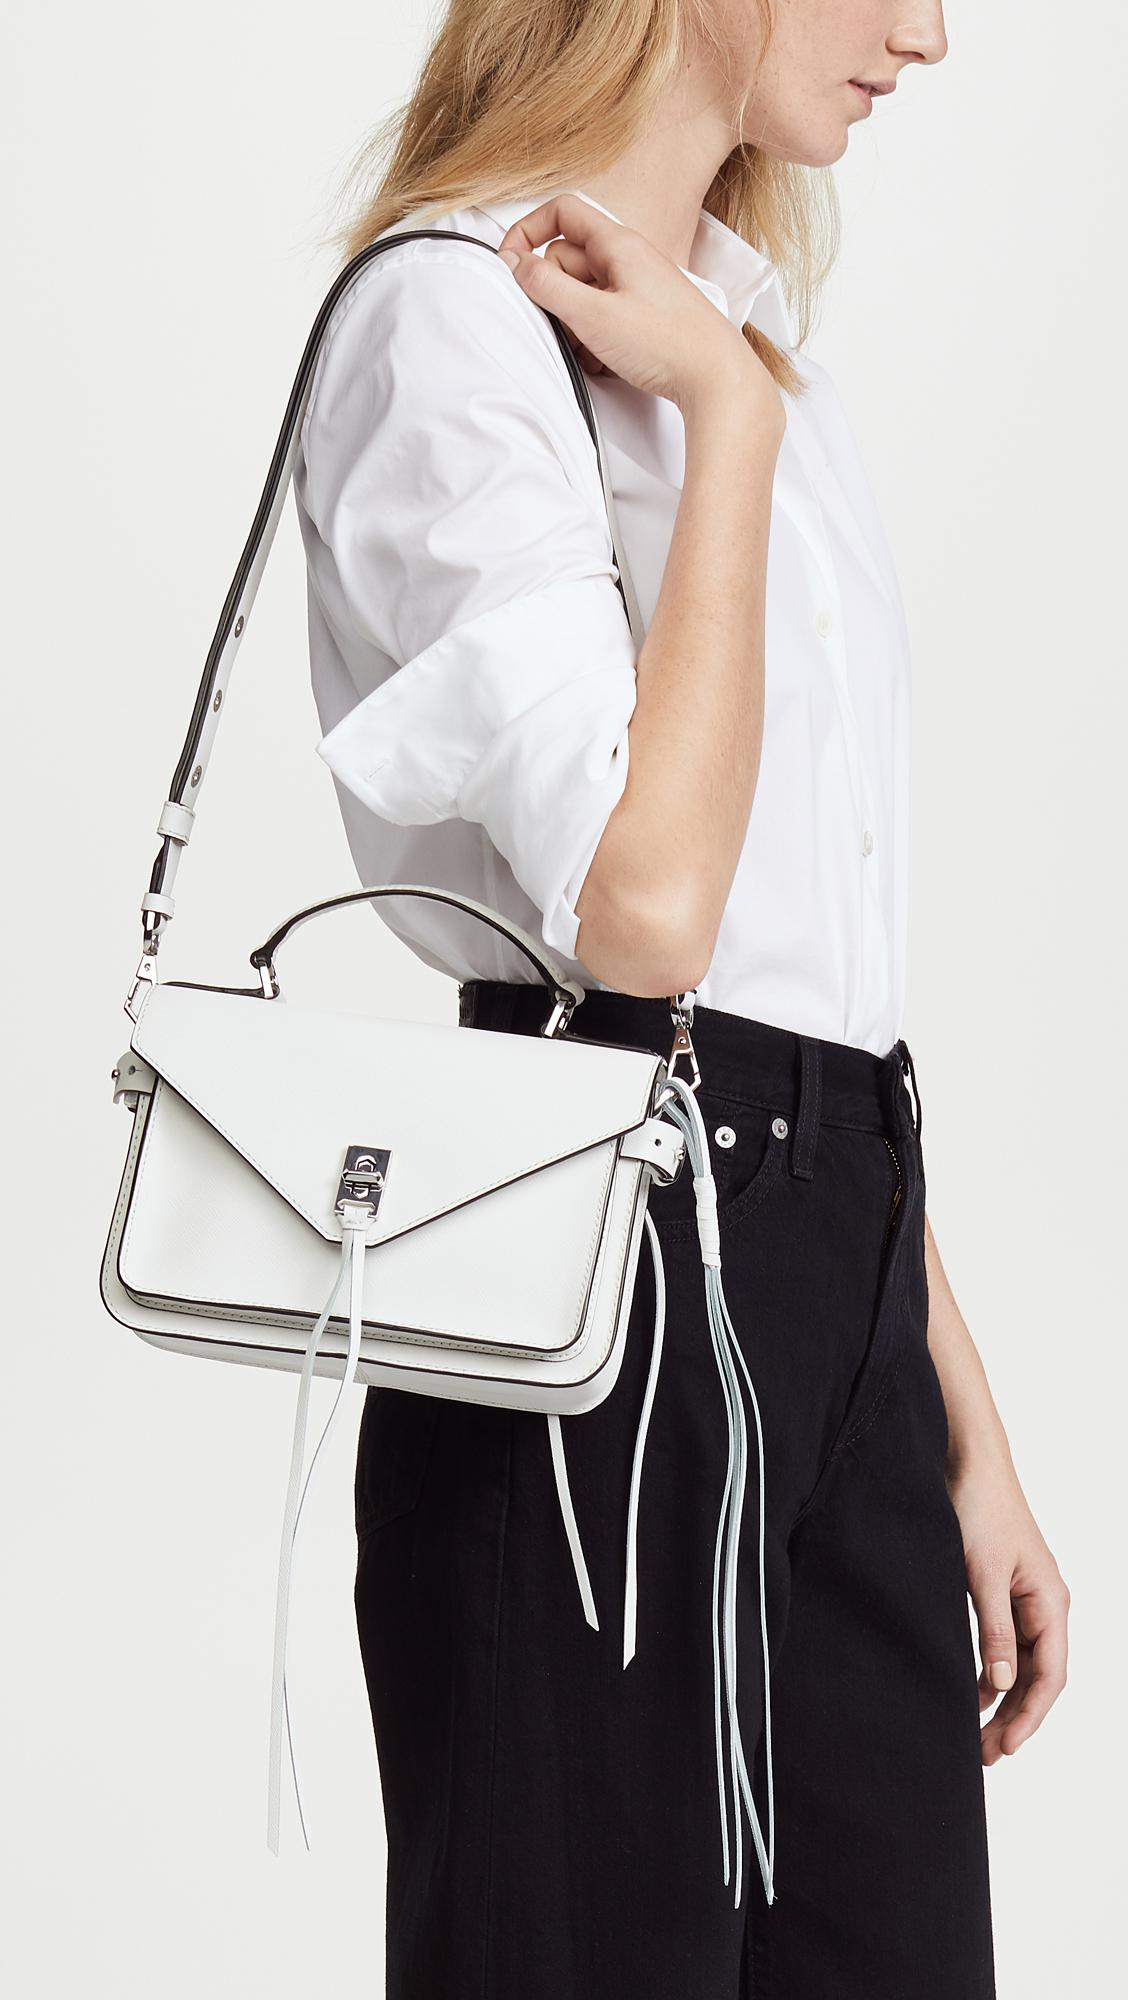 ab83541ec4 Lyst - Rebecca Minkoff Small Darren Messenger Bag in White